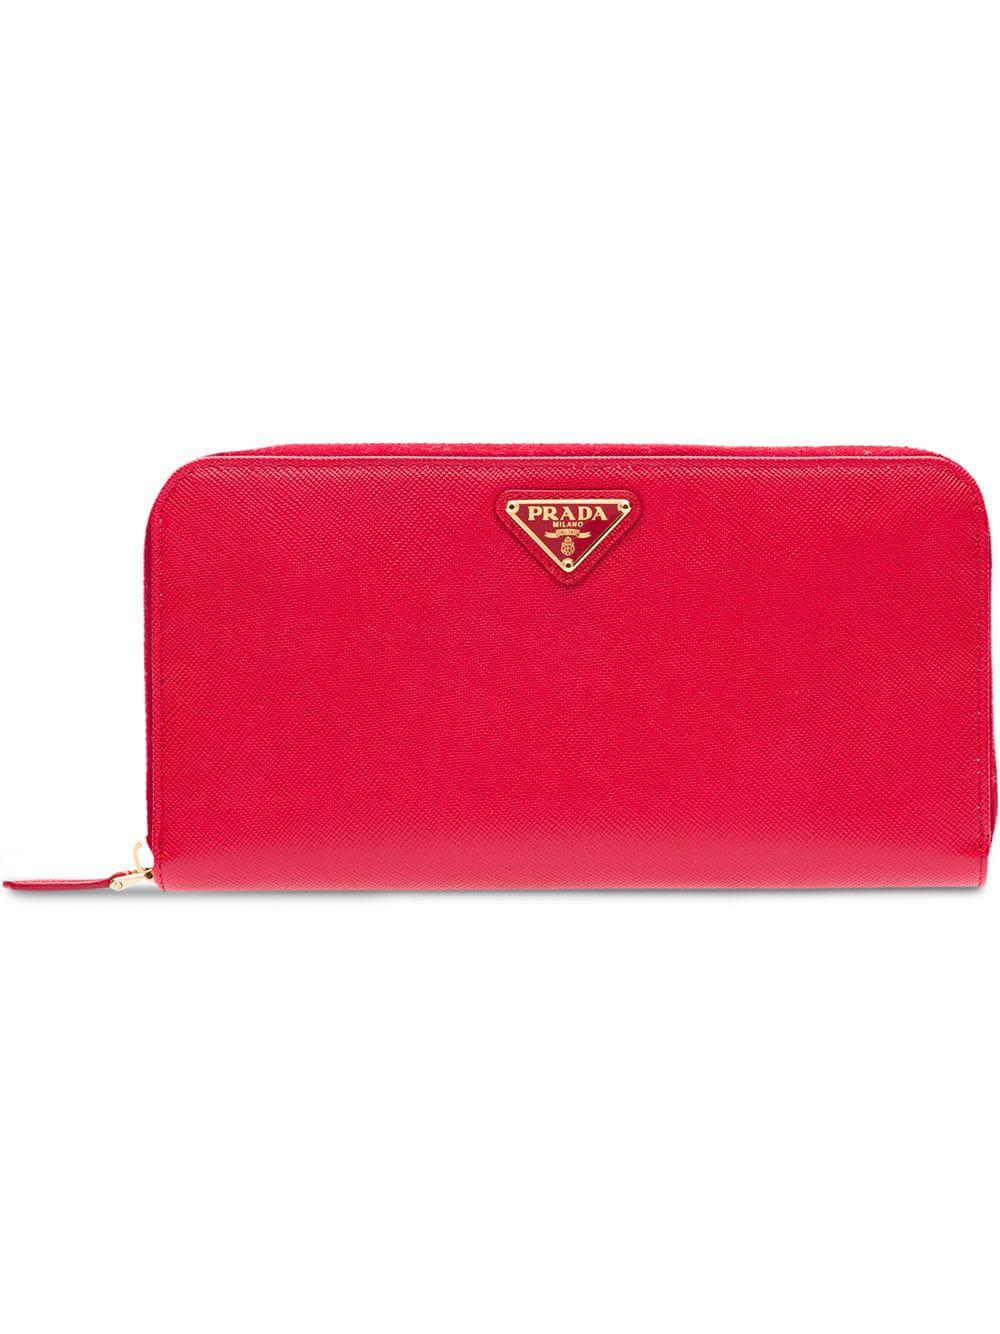 7a51b1efe534 Prada Large Saffiano Leather Wallet - Red | ModeSens